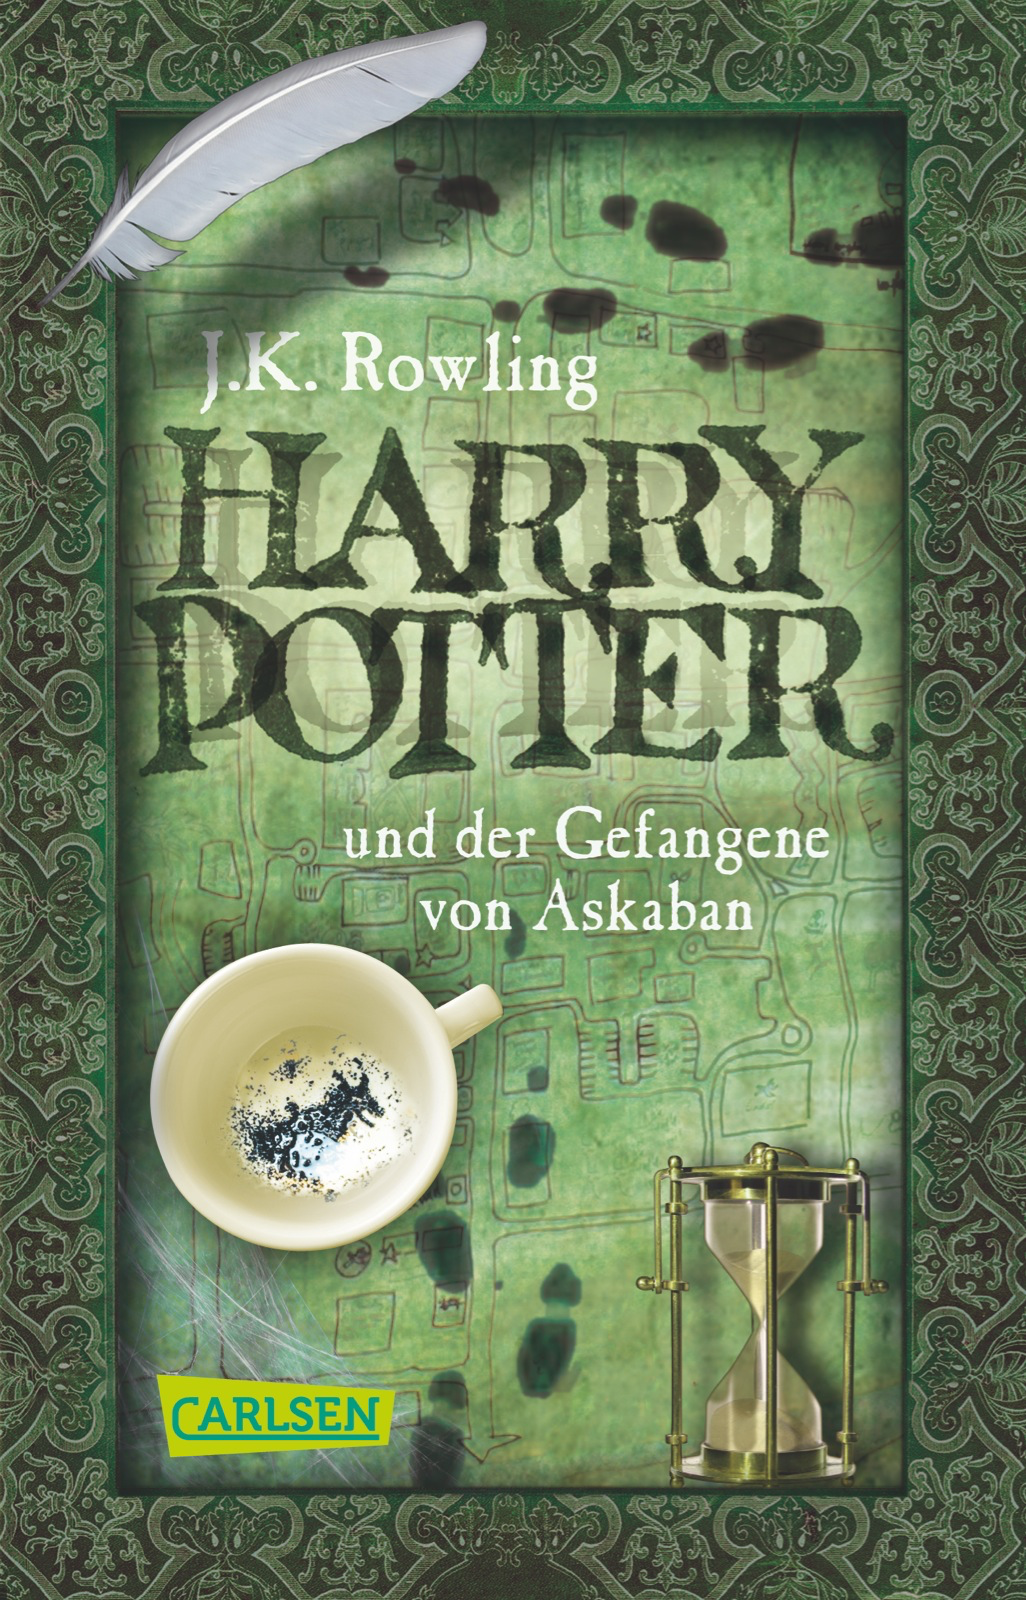 German anniversary pocket edition cover (2013)